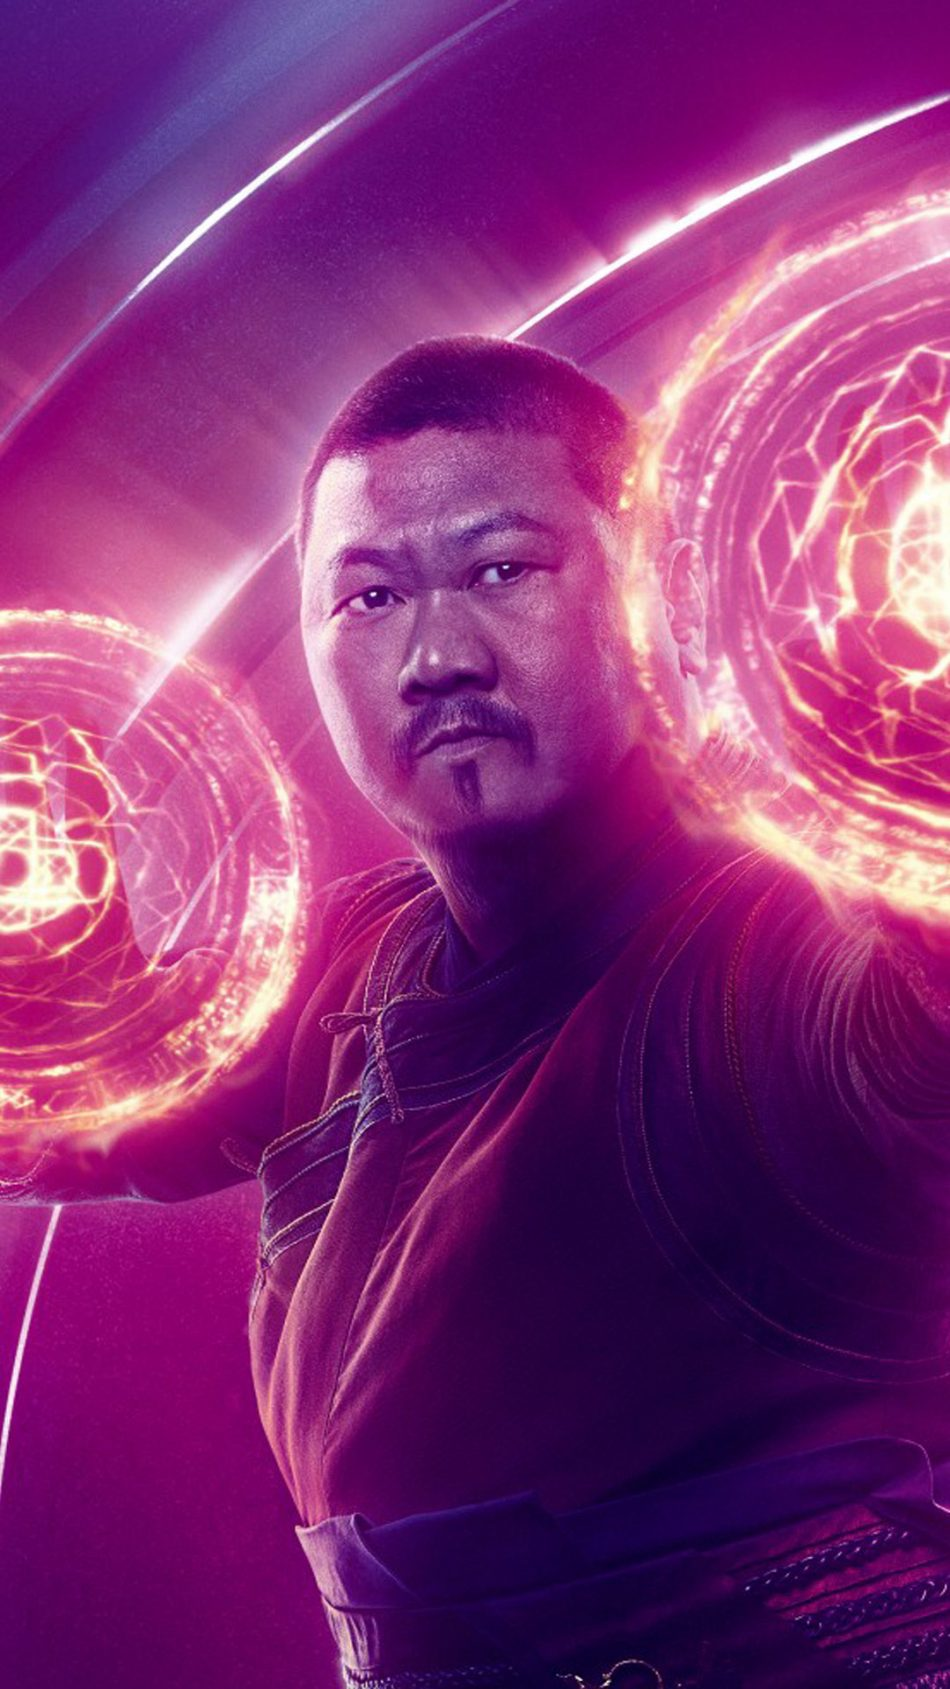 Download Wong In Avengers Infinity War Free Pure 4k Ultra Hd Mobile